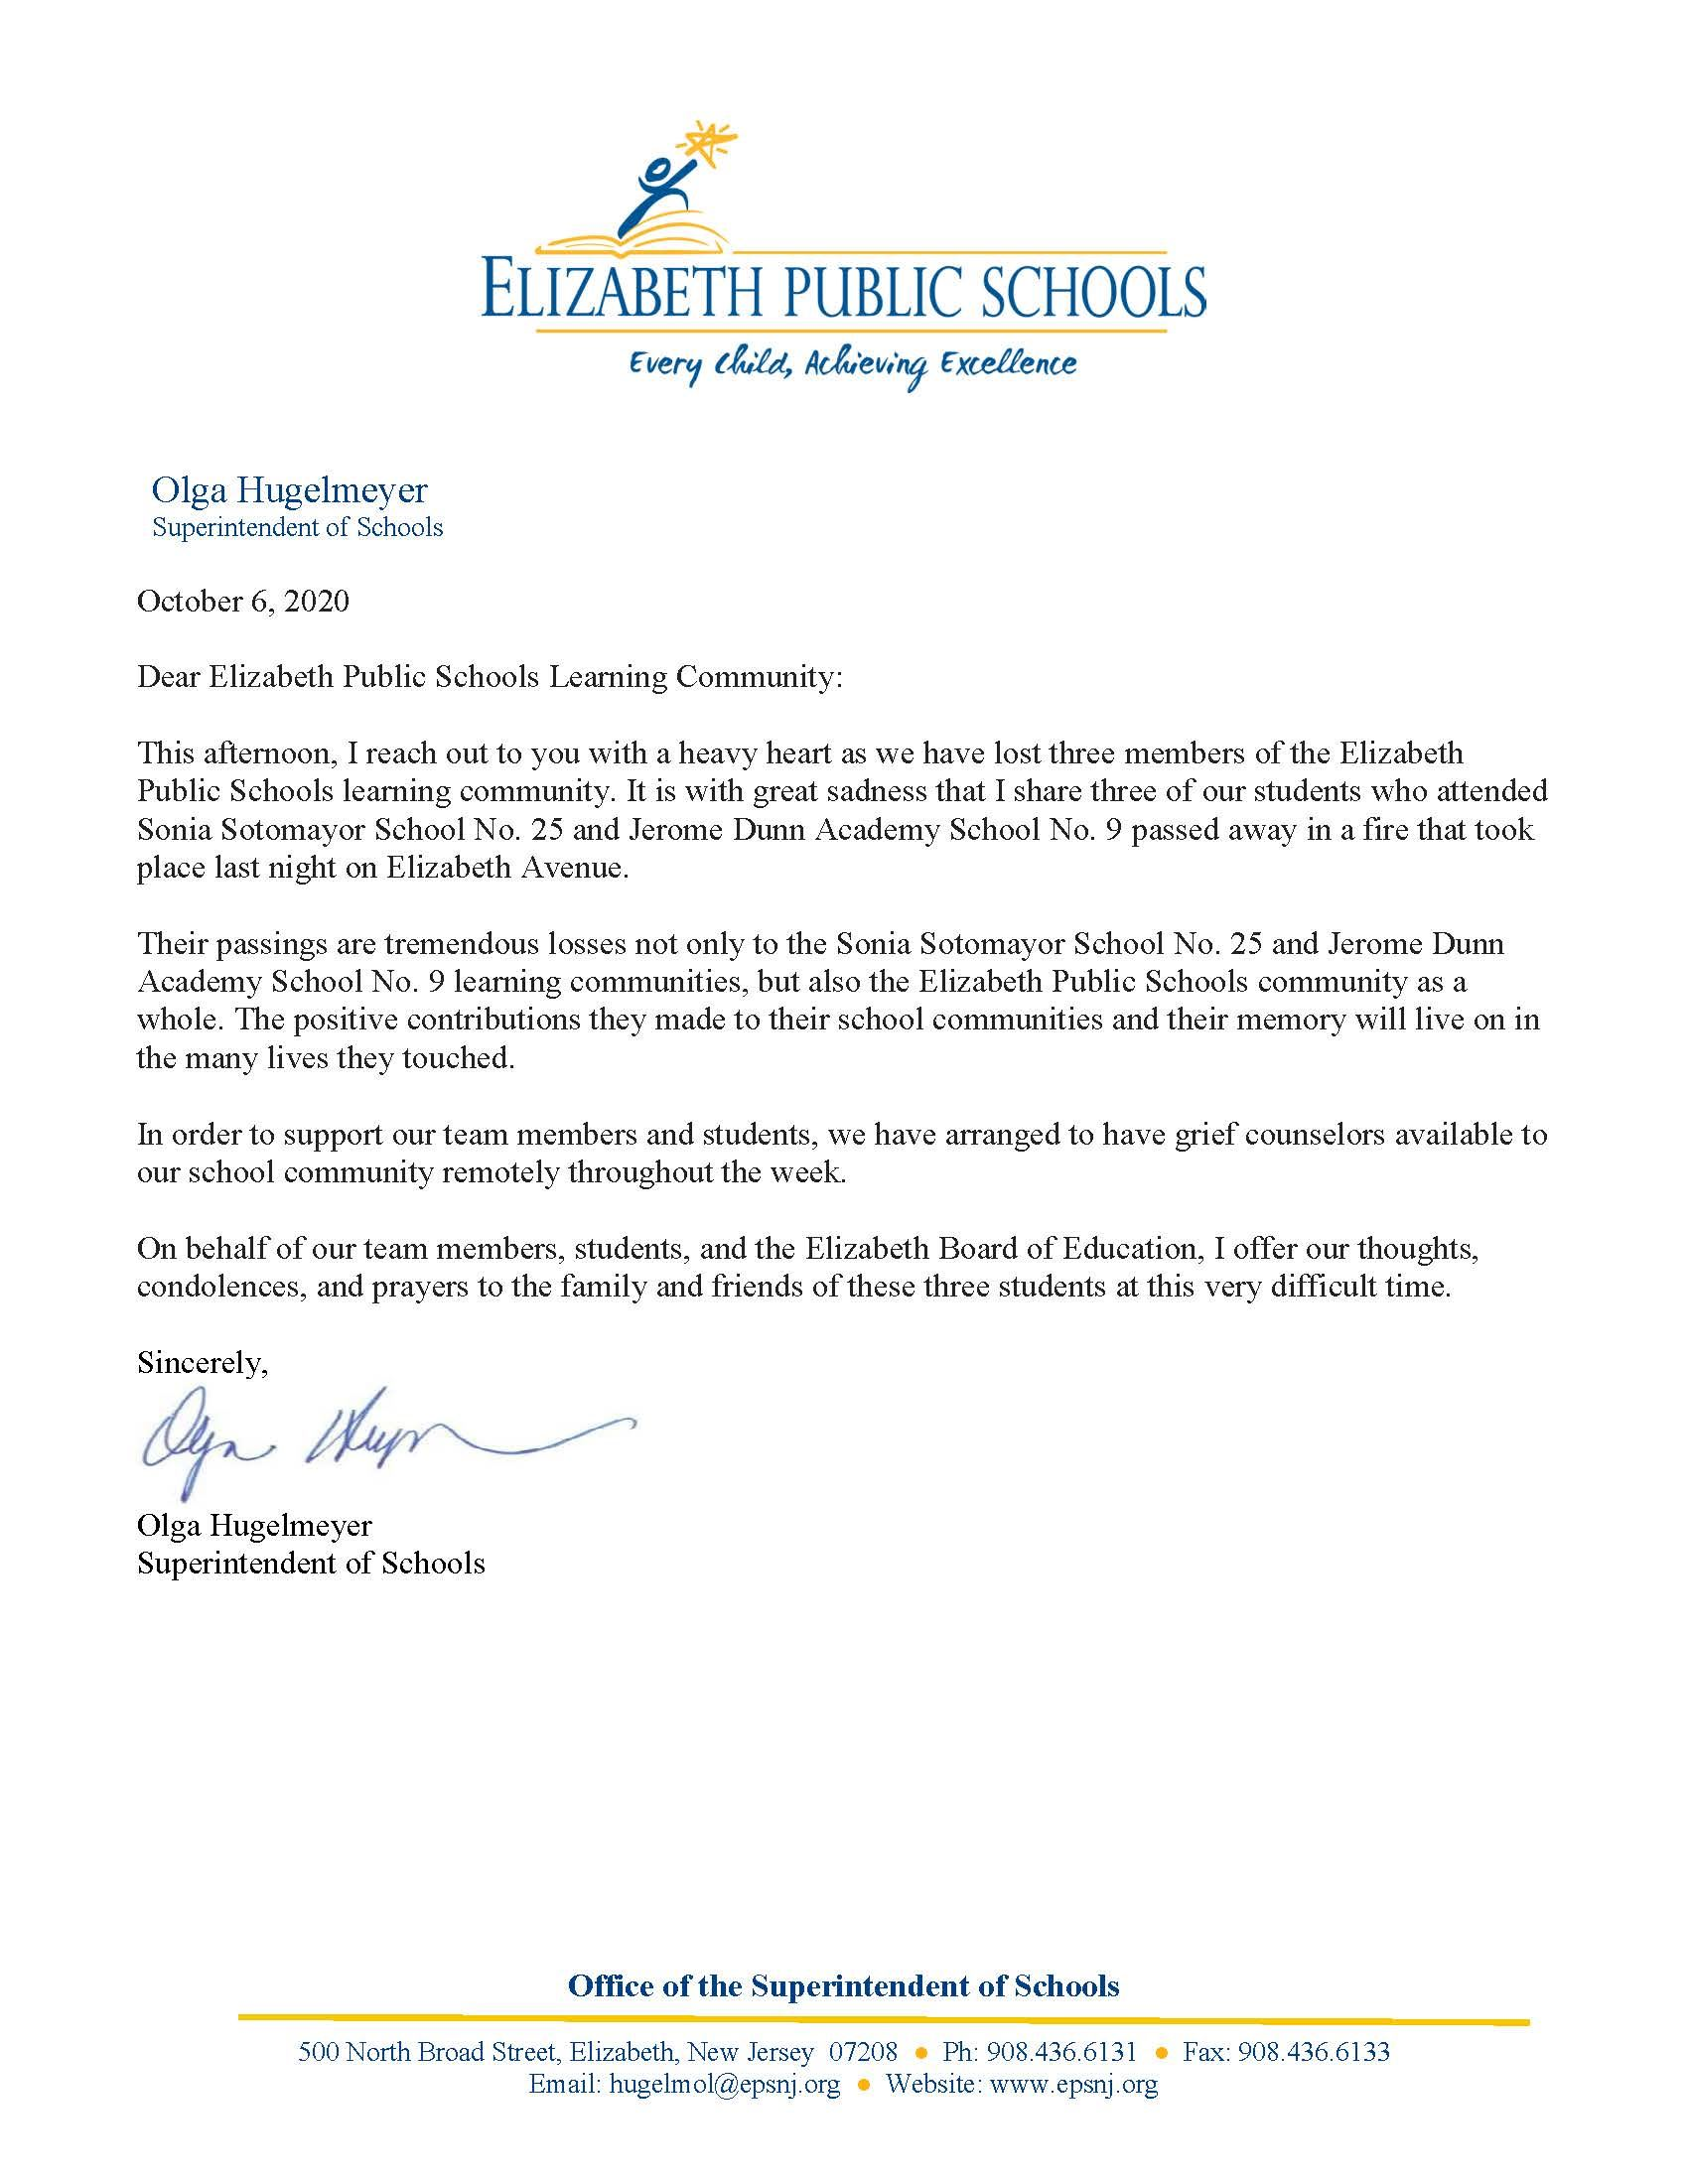 Letter to EPS Community- Passing of three EPS students in Elizabeth Avenue fire- 10-6-20